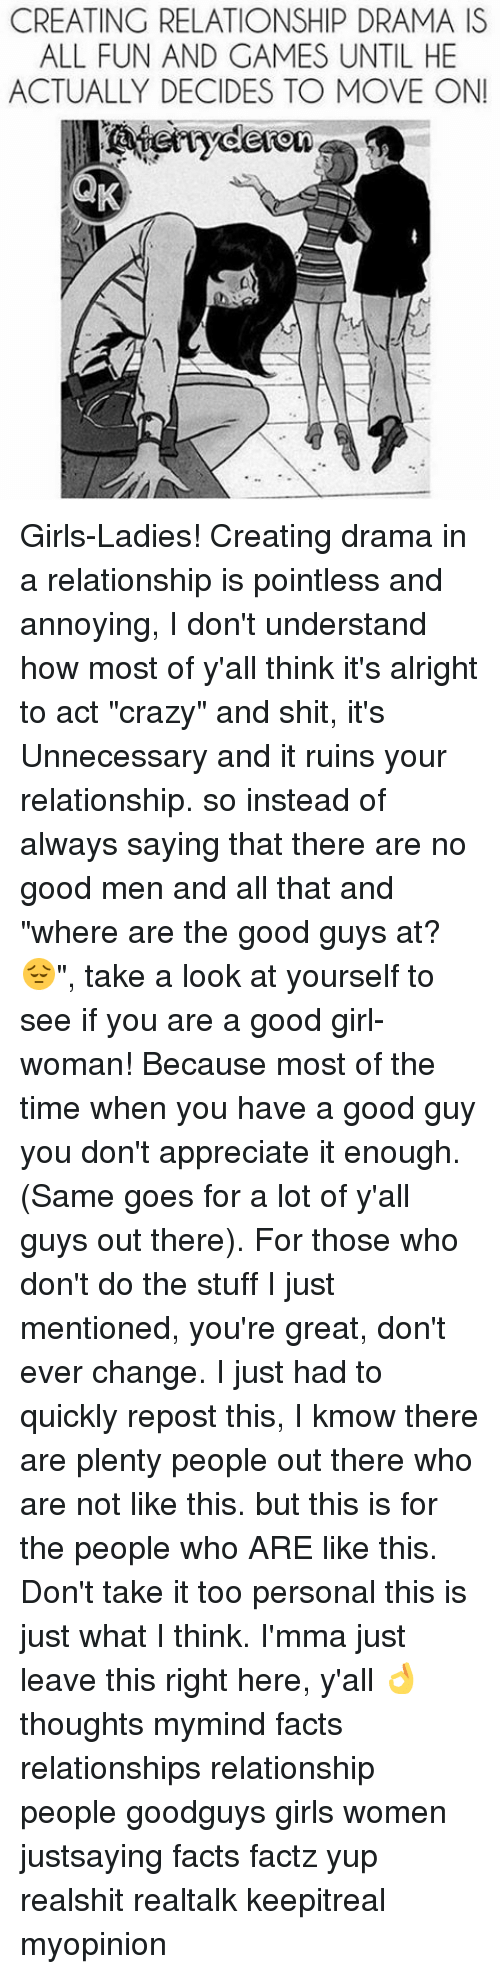 """Memes, 🤖, and Drama: CREATING RELATIONSHIP DRAMA IS  ALL FUN AND GAMES UNTIL HE  ACTUALLY DECIDES TO MOVE ON!  ryderon Girls-Ladies! Creating drama in a relationship is pointless and annoying, I don't understand how most of y'all think it's alright to act """"crazy"""" and shit, it's Unnecessary and it ruins your relationship. so instead of always saying that there are no good men and all that and """"where are the good guys at? 😔"""", take a look at yourself to see if you are a good girl-woman! Because most of the time when you have a good guy you don't appreciate it enough. (Same goes for a lot of y'all guys out there). For those who don't do the stuff I just mentioned, you're great, don't ever change. I just had to quickly repost this, I kmow there are plenty people out there who are not like this. but this is for the people who ARE like this. Don't take it too personal this is just what I think. I'mma just leave this right here, y'all 👌 thoughts mymind facts relationships relationship people goodguys girls women justsaying facts factz yup realshit realtalk keepitreal myopinion"""